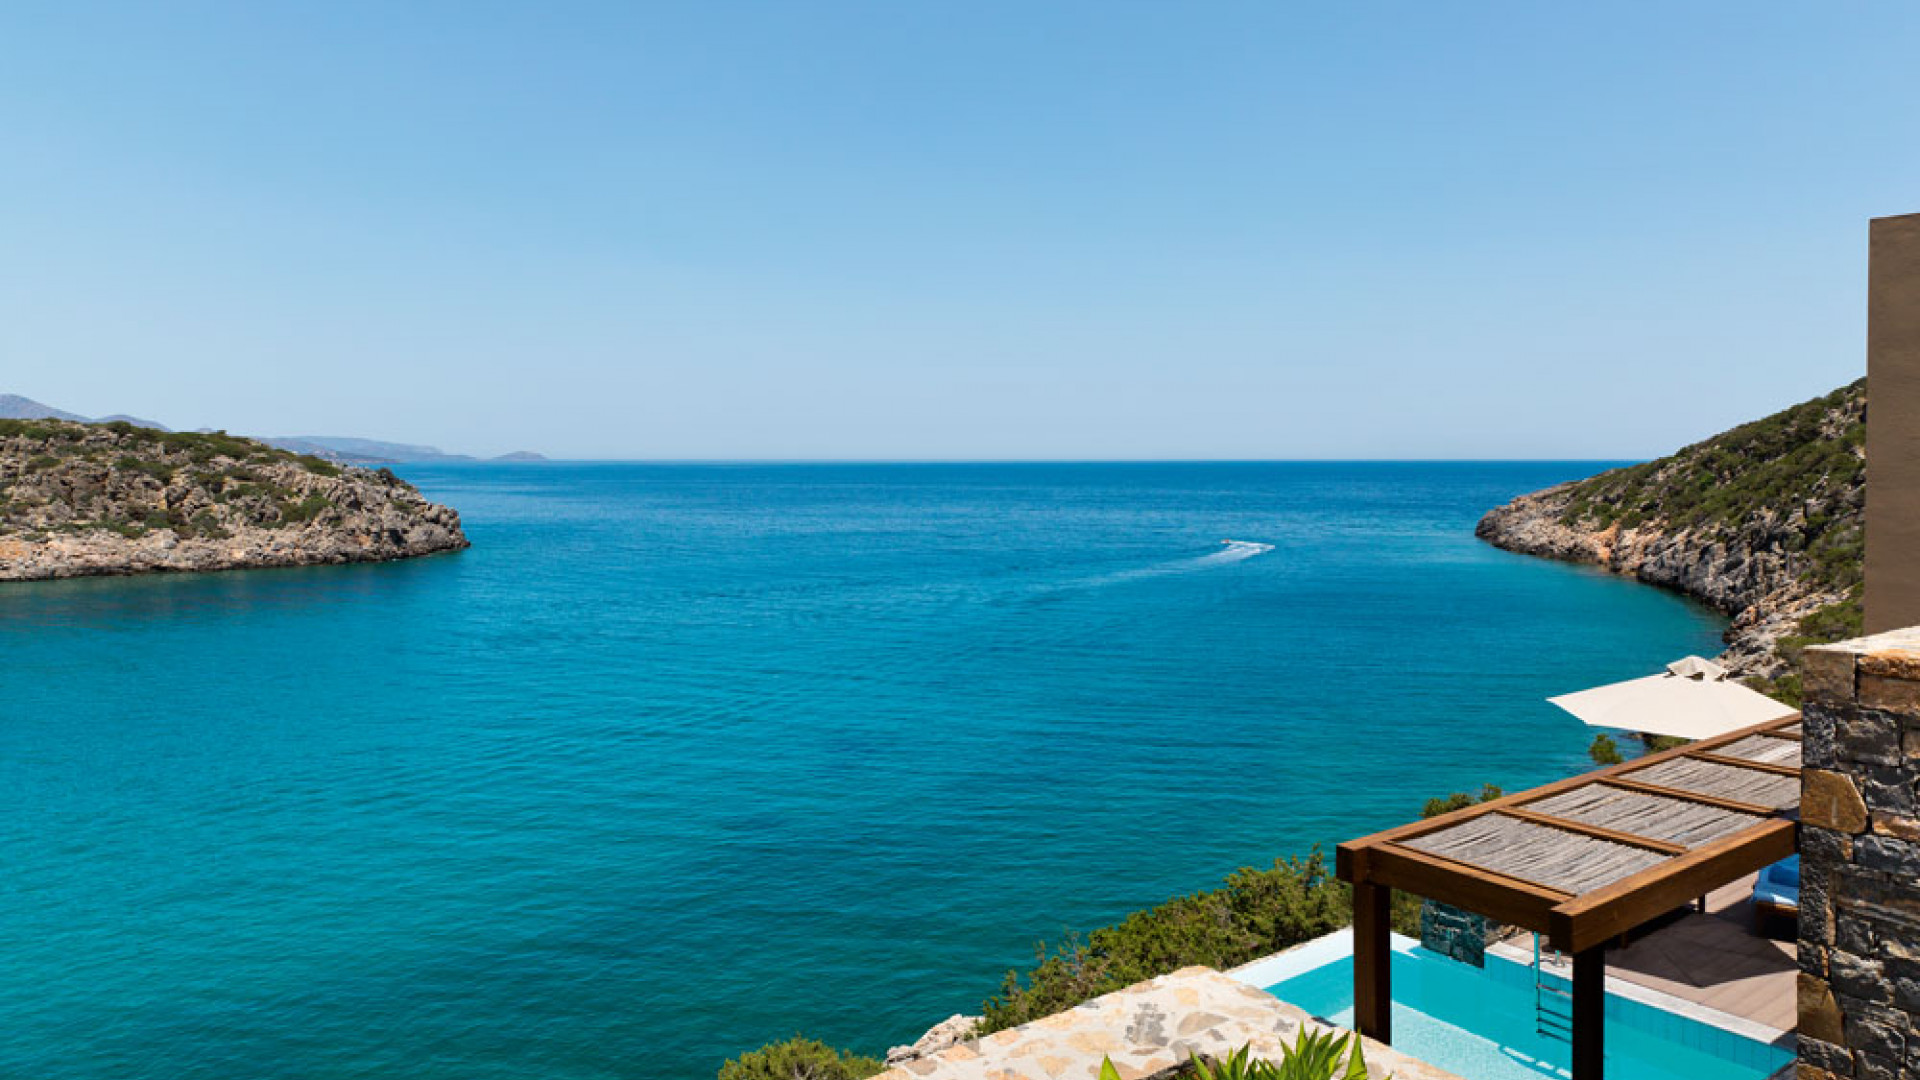 Aegean sea views from a villa at Daios Cove